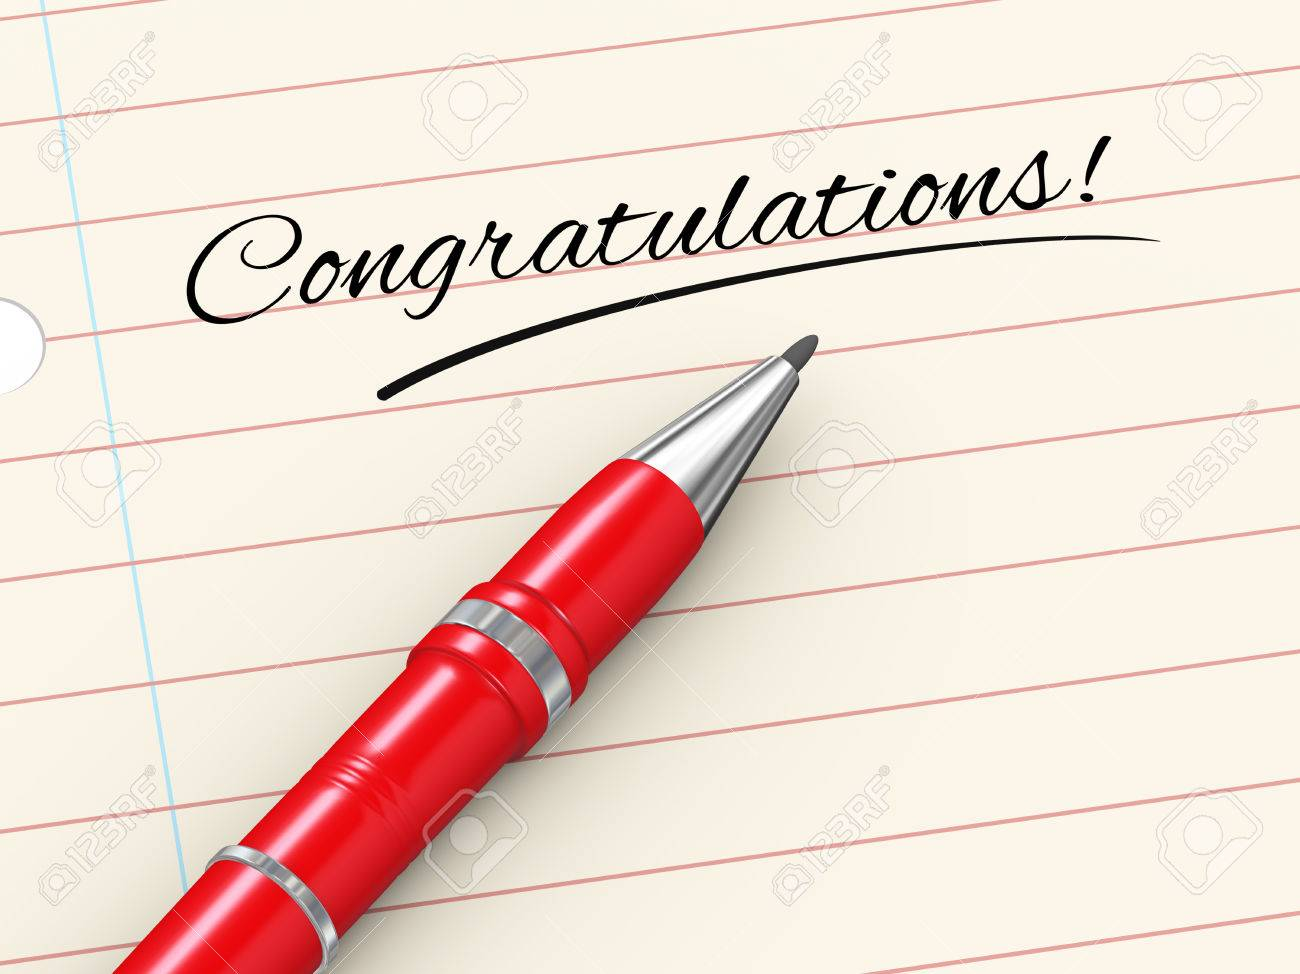 d render of pen on paper written congratulations stock photo 3d render of pen on paper written congratulations stock photo 29232223